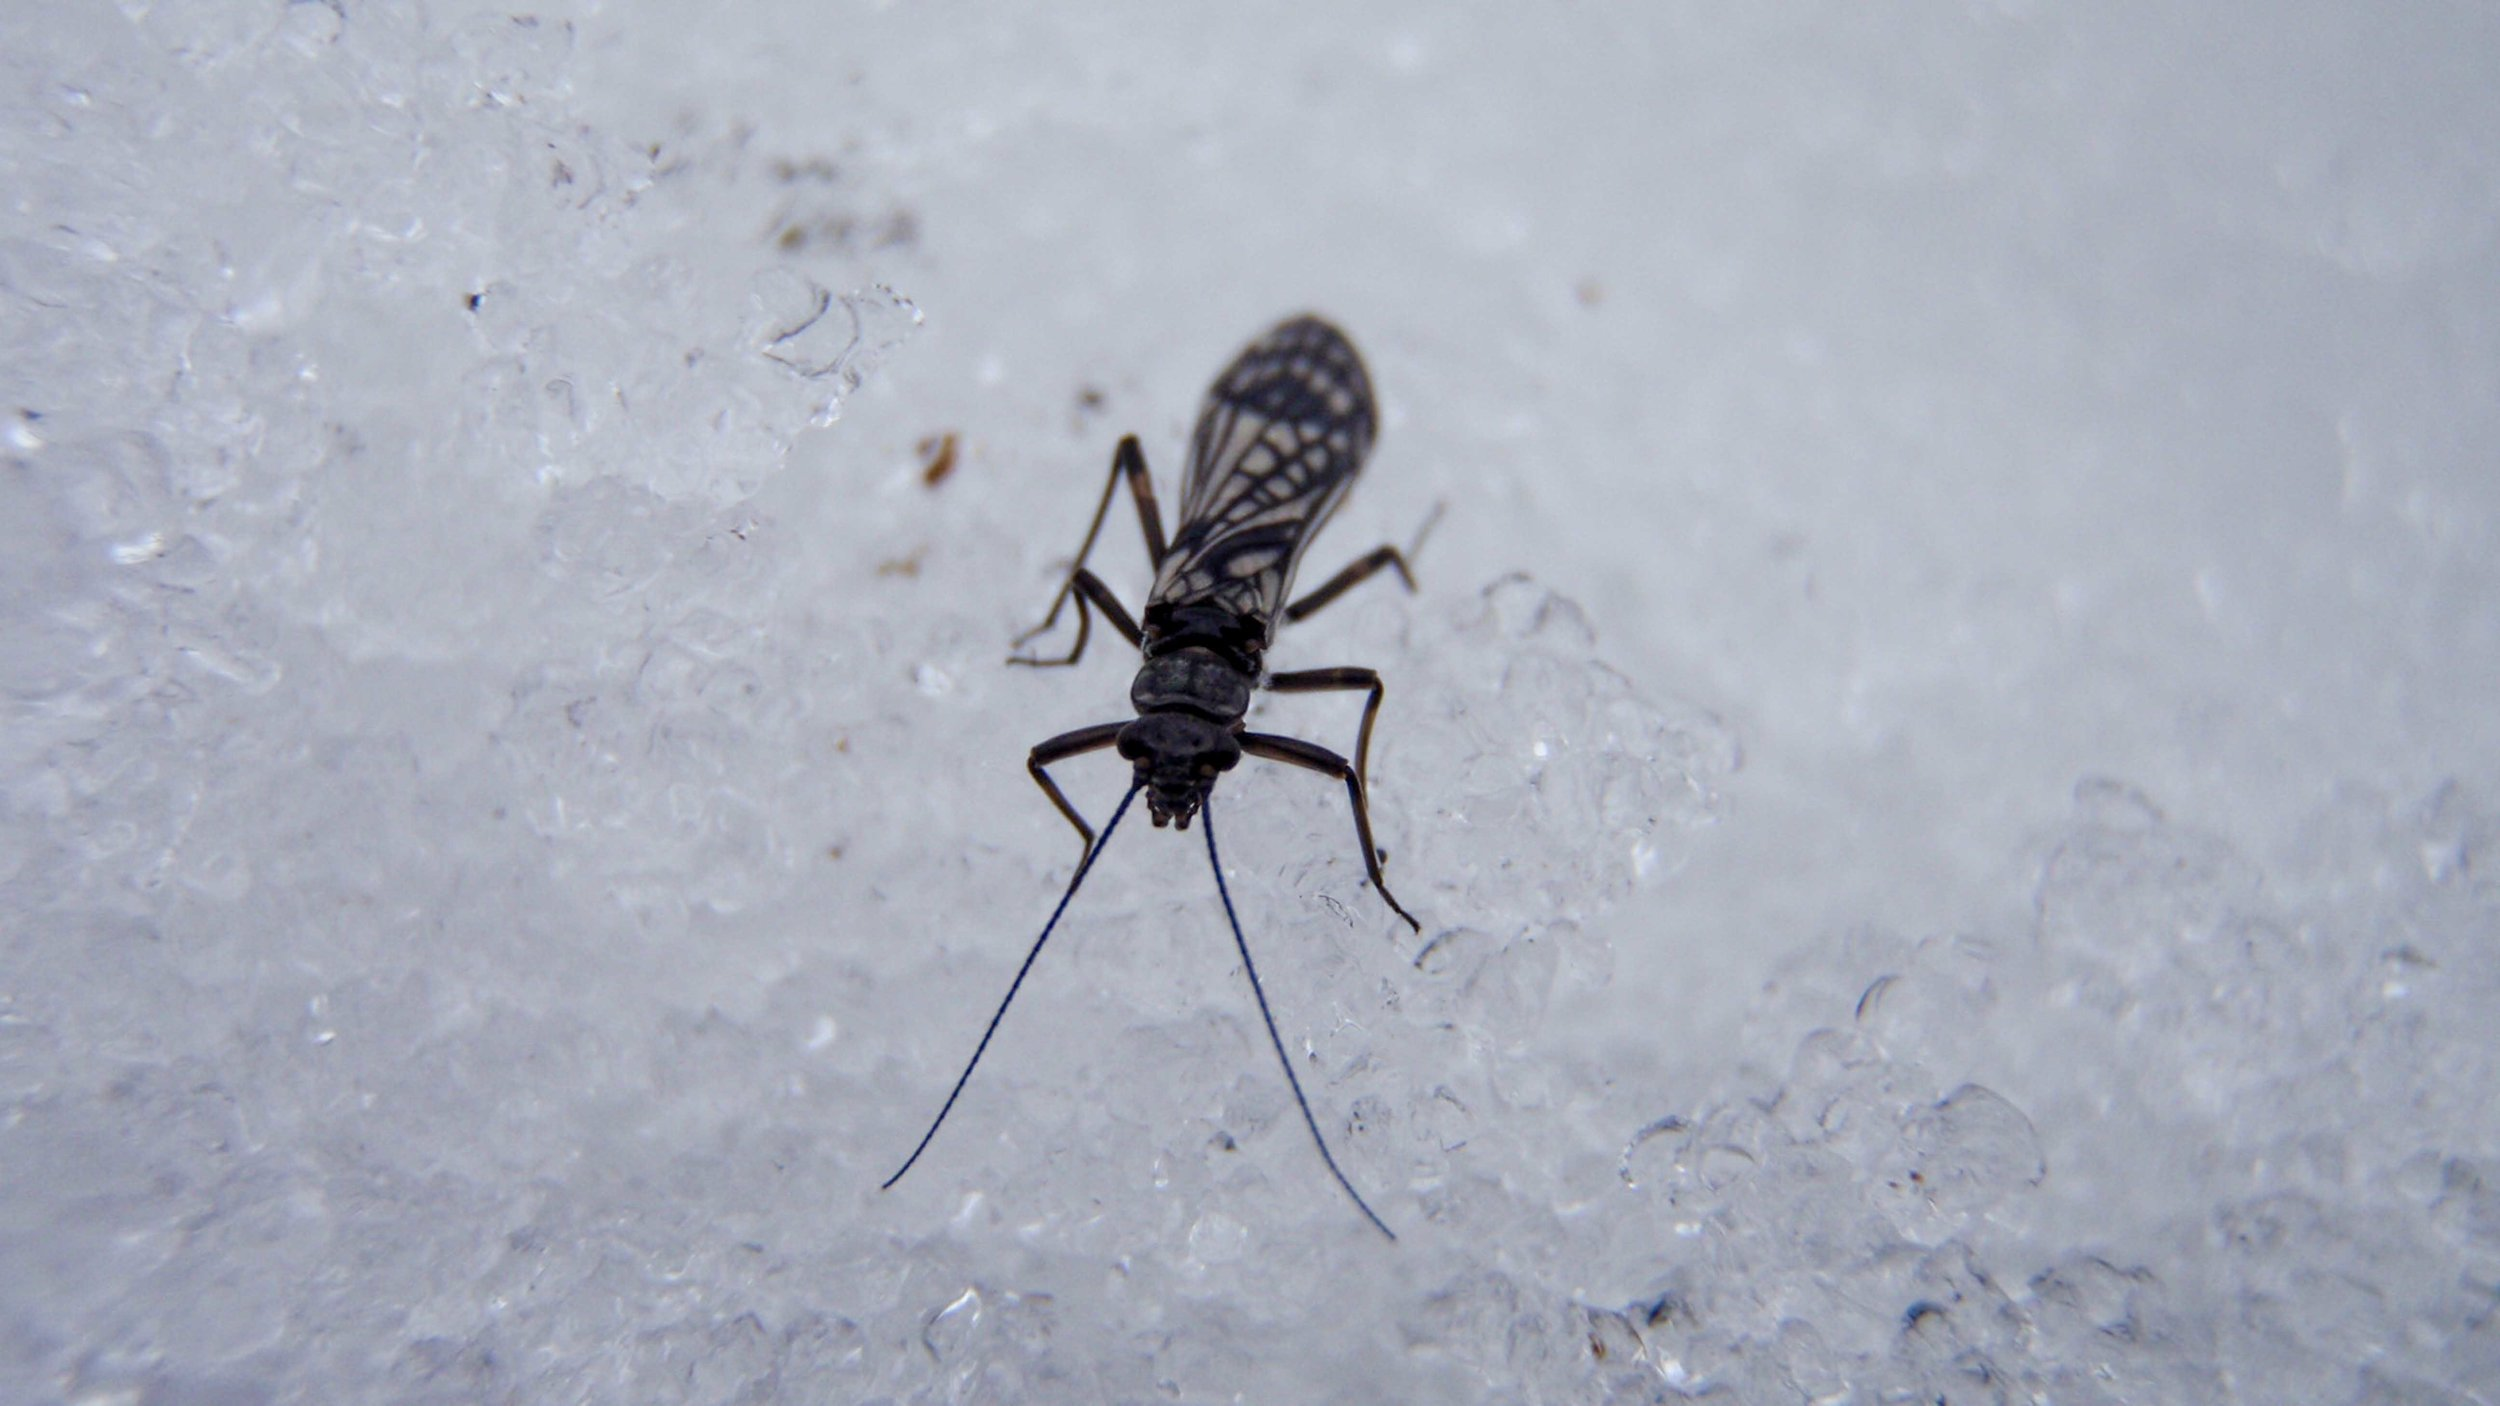 Winter Stonefly Adult